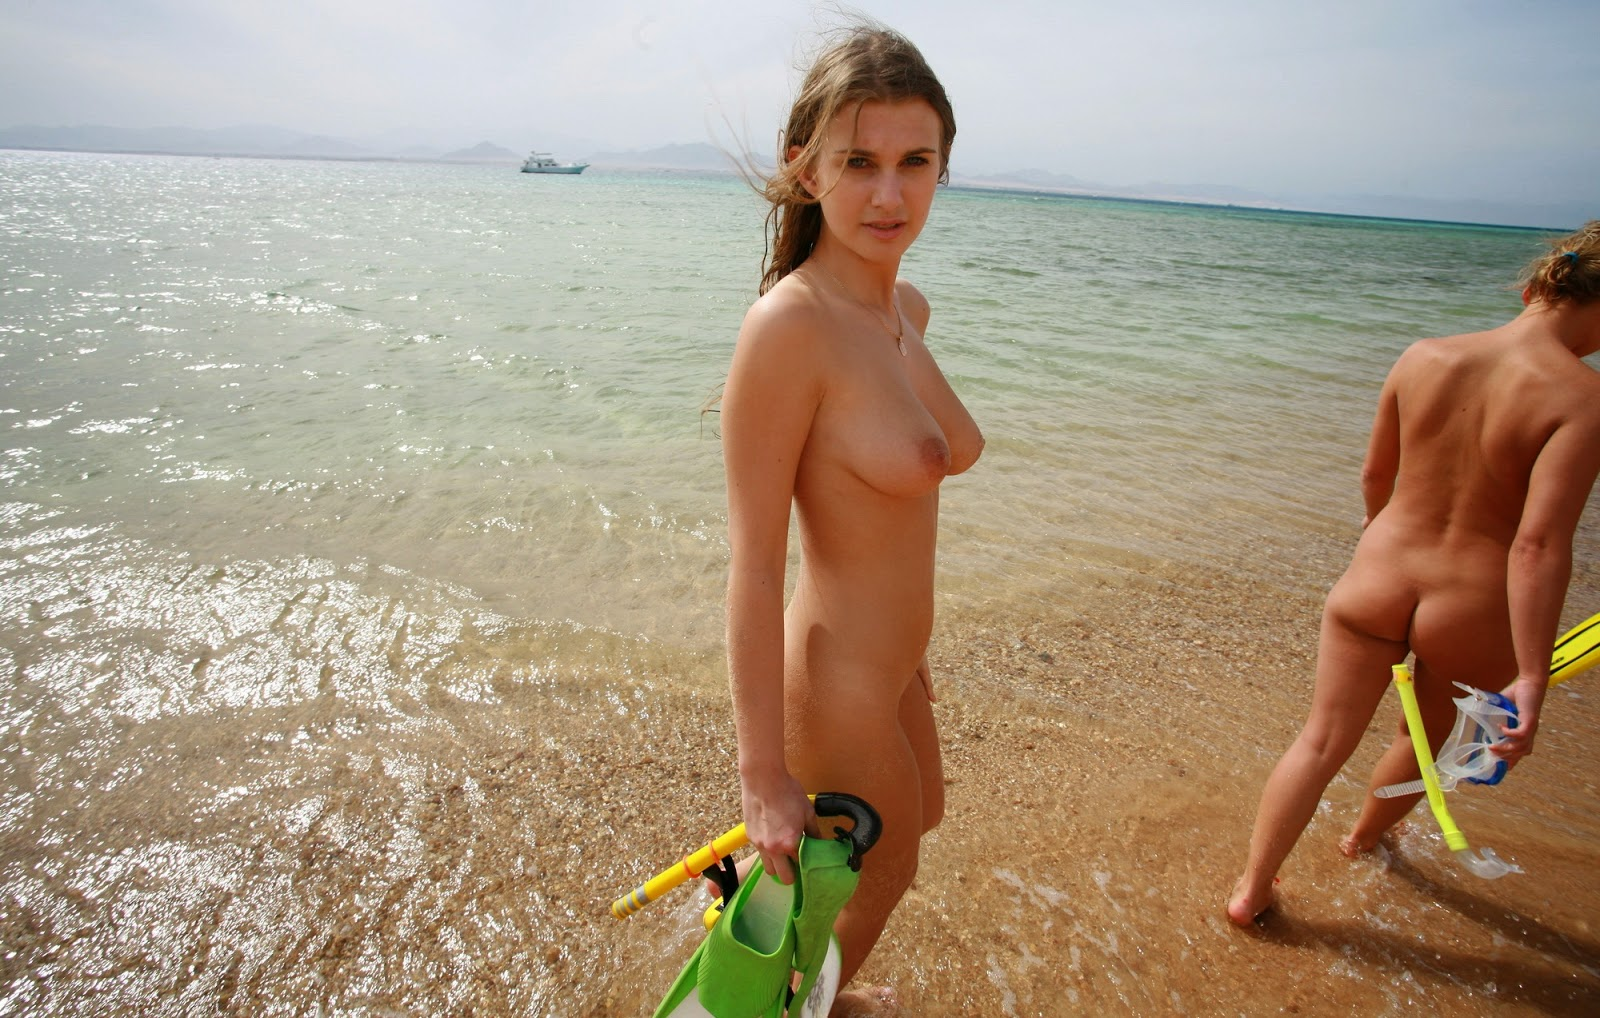 Nudism - Photo - Hq  Girls Young - Nude Beach Egyptian-1465